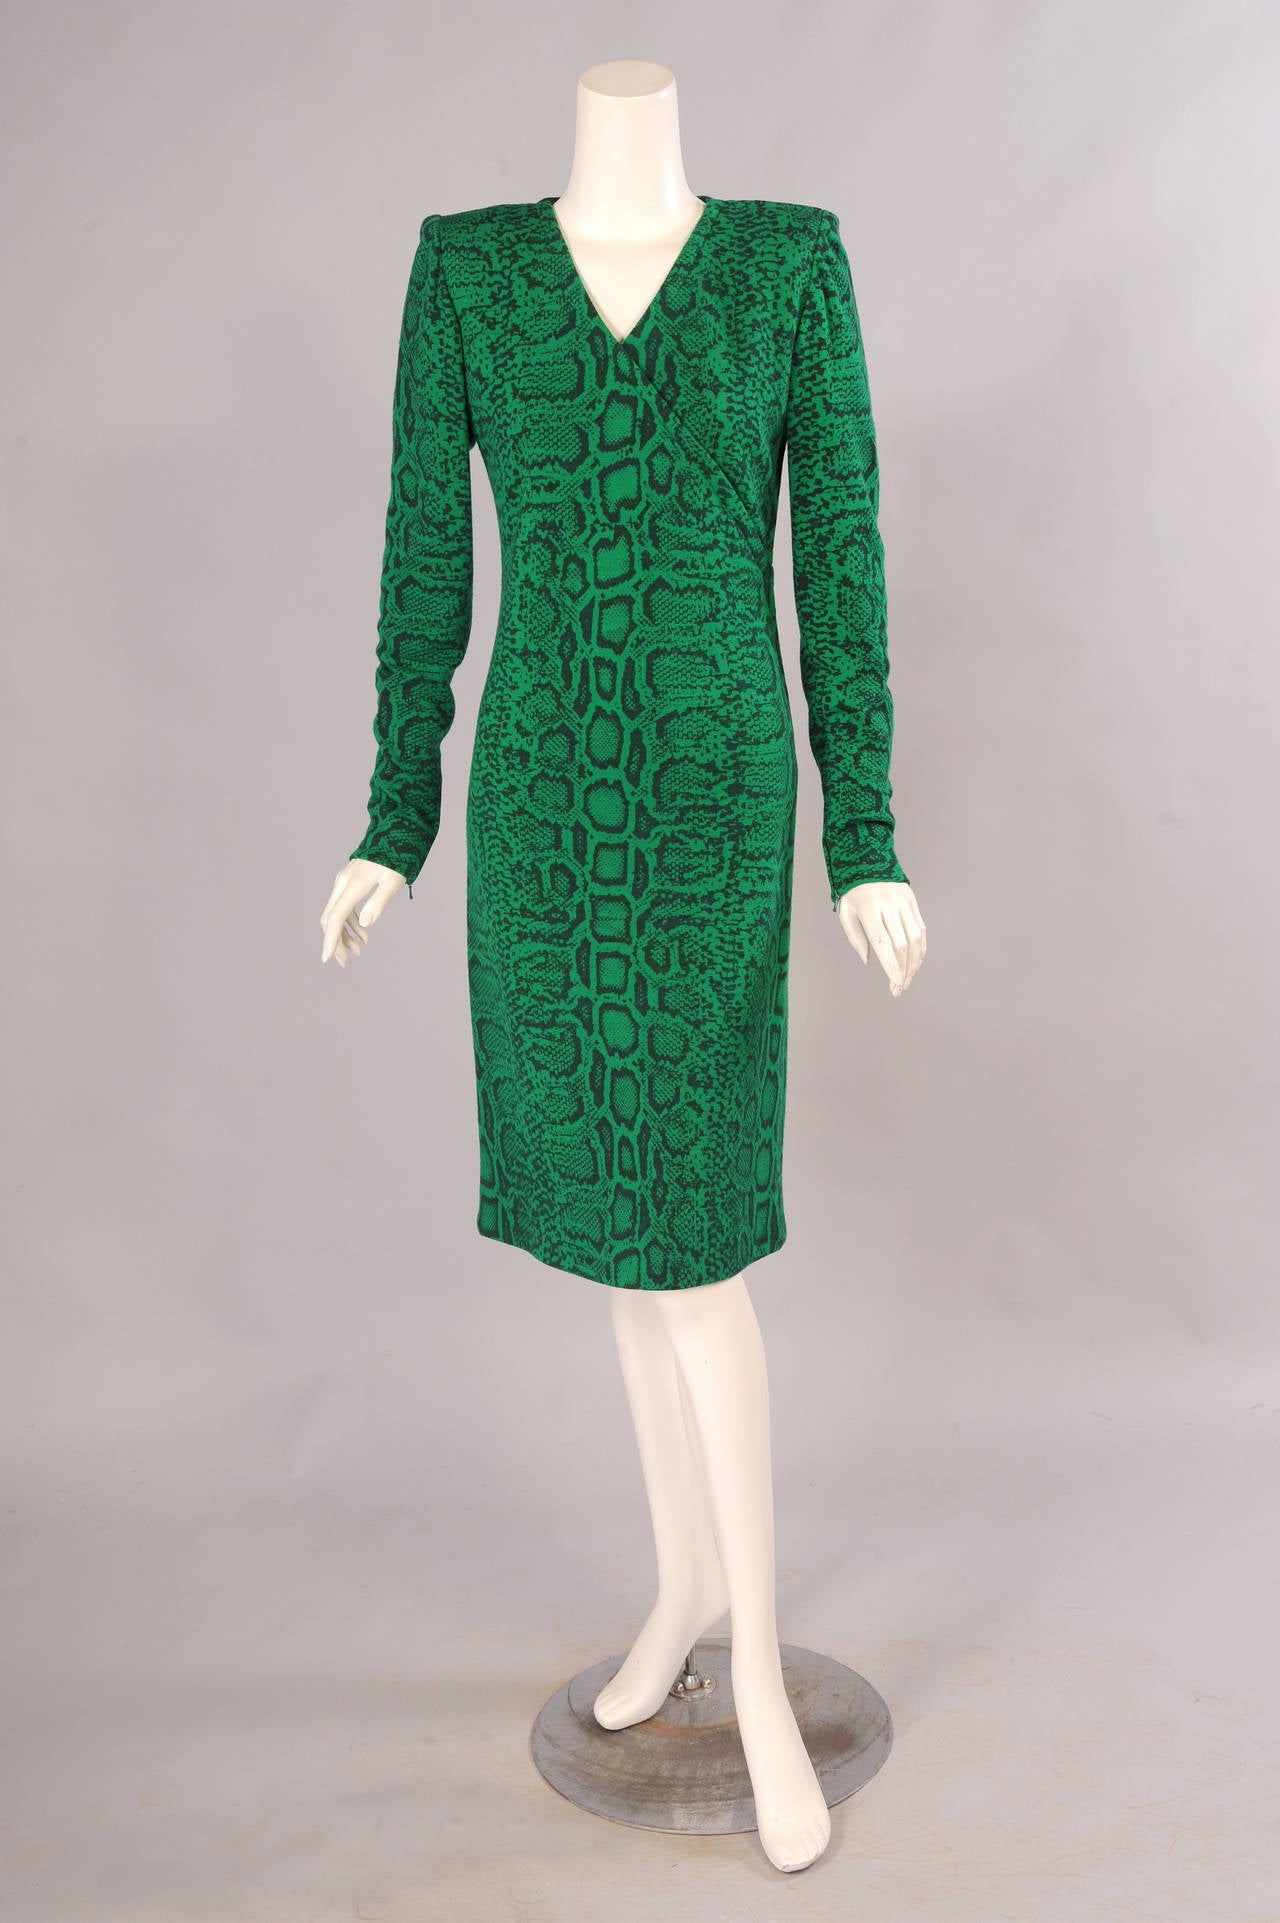 Givenchy Haute Couture Kelly Green Snakeskin Print Wool